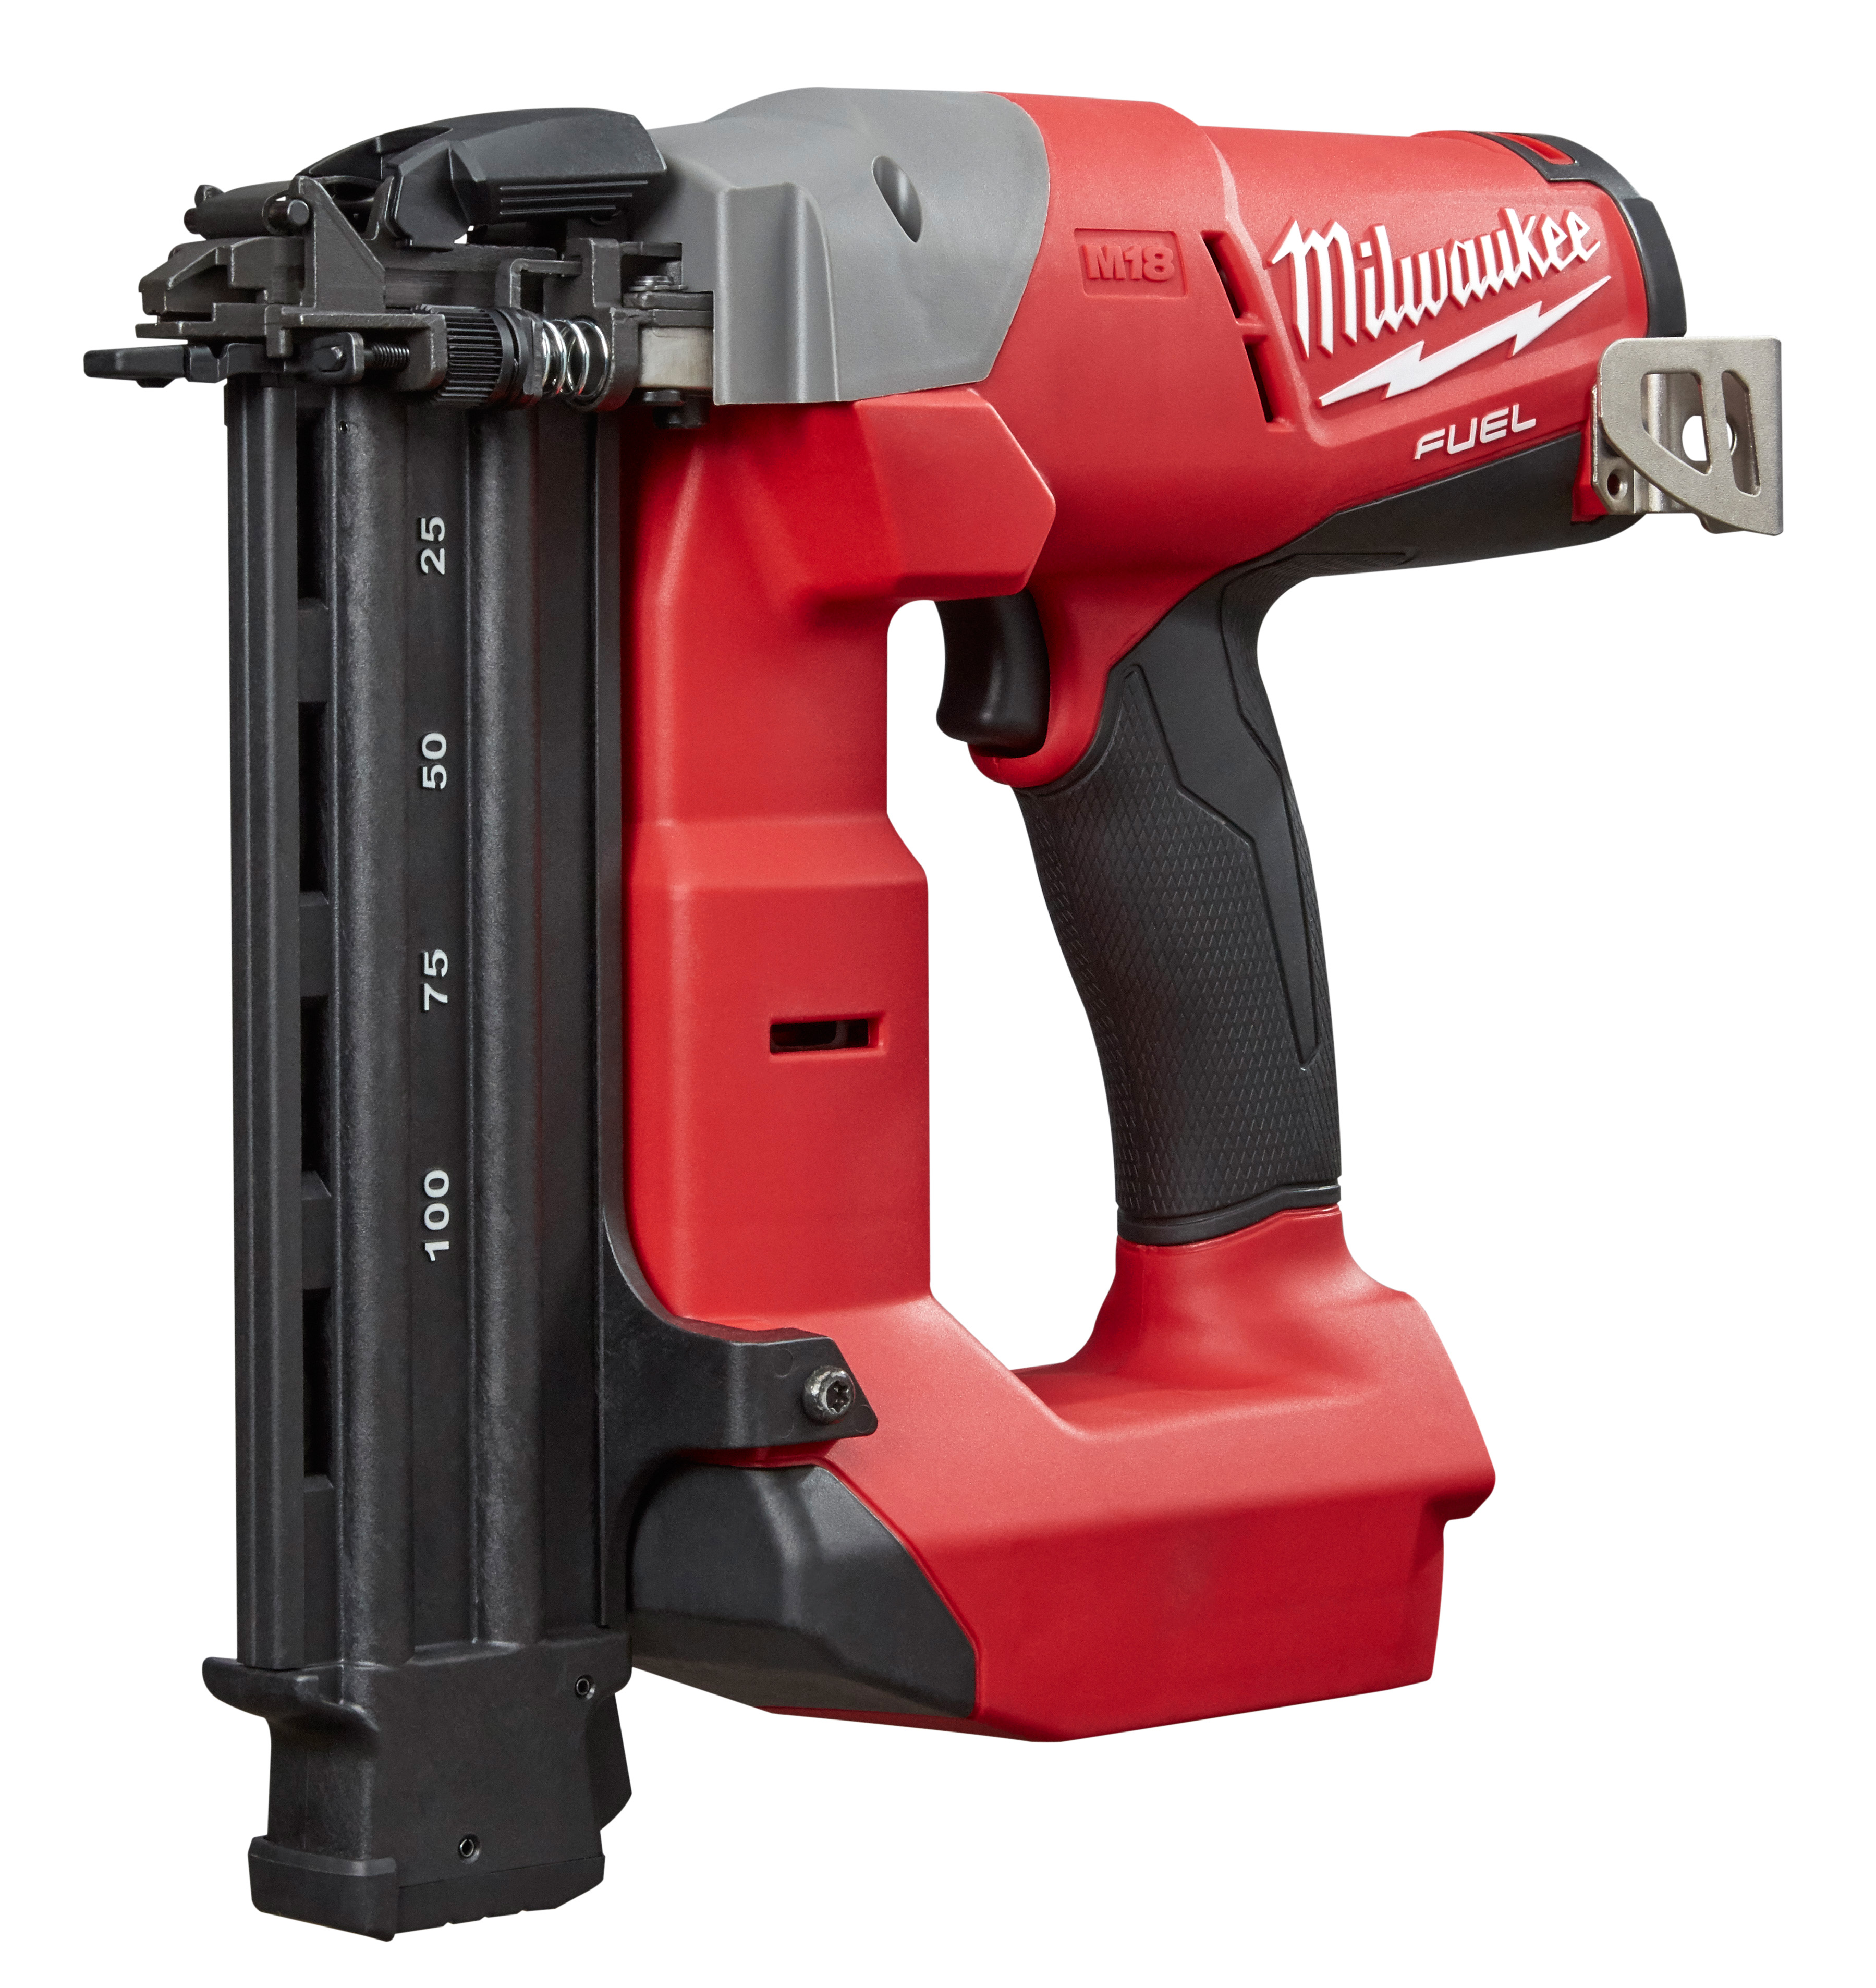 Milwaukee® M18™ FUEL™ 2740-20 Brushless Cordless Brad Nailer, 5/8 to 2-1/8 in Fastener, 110 Nails Nails Magazine, 11-13/32 in OAL, Battery